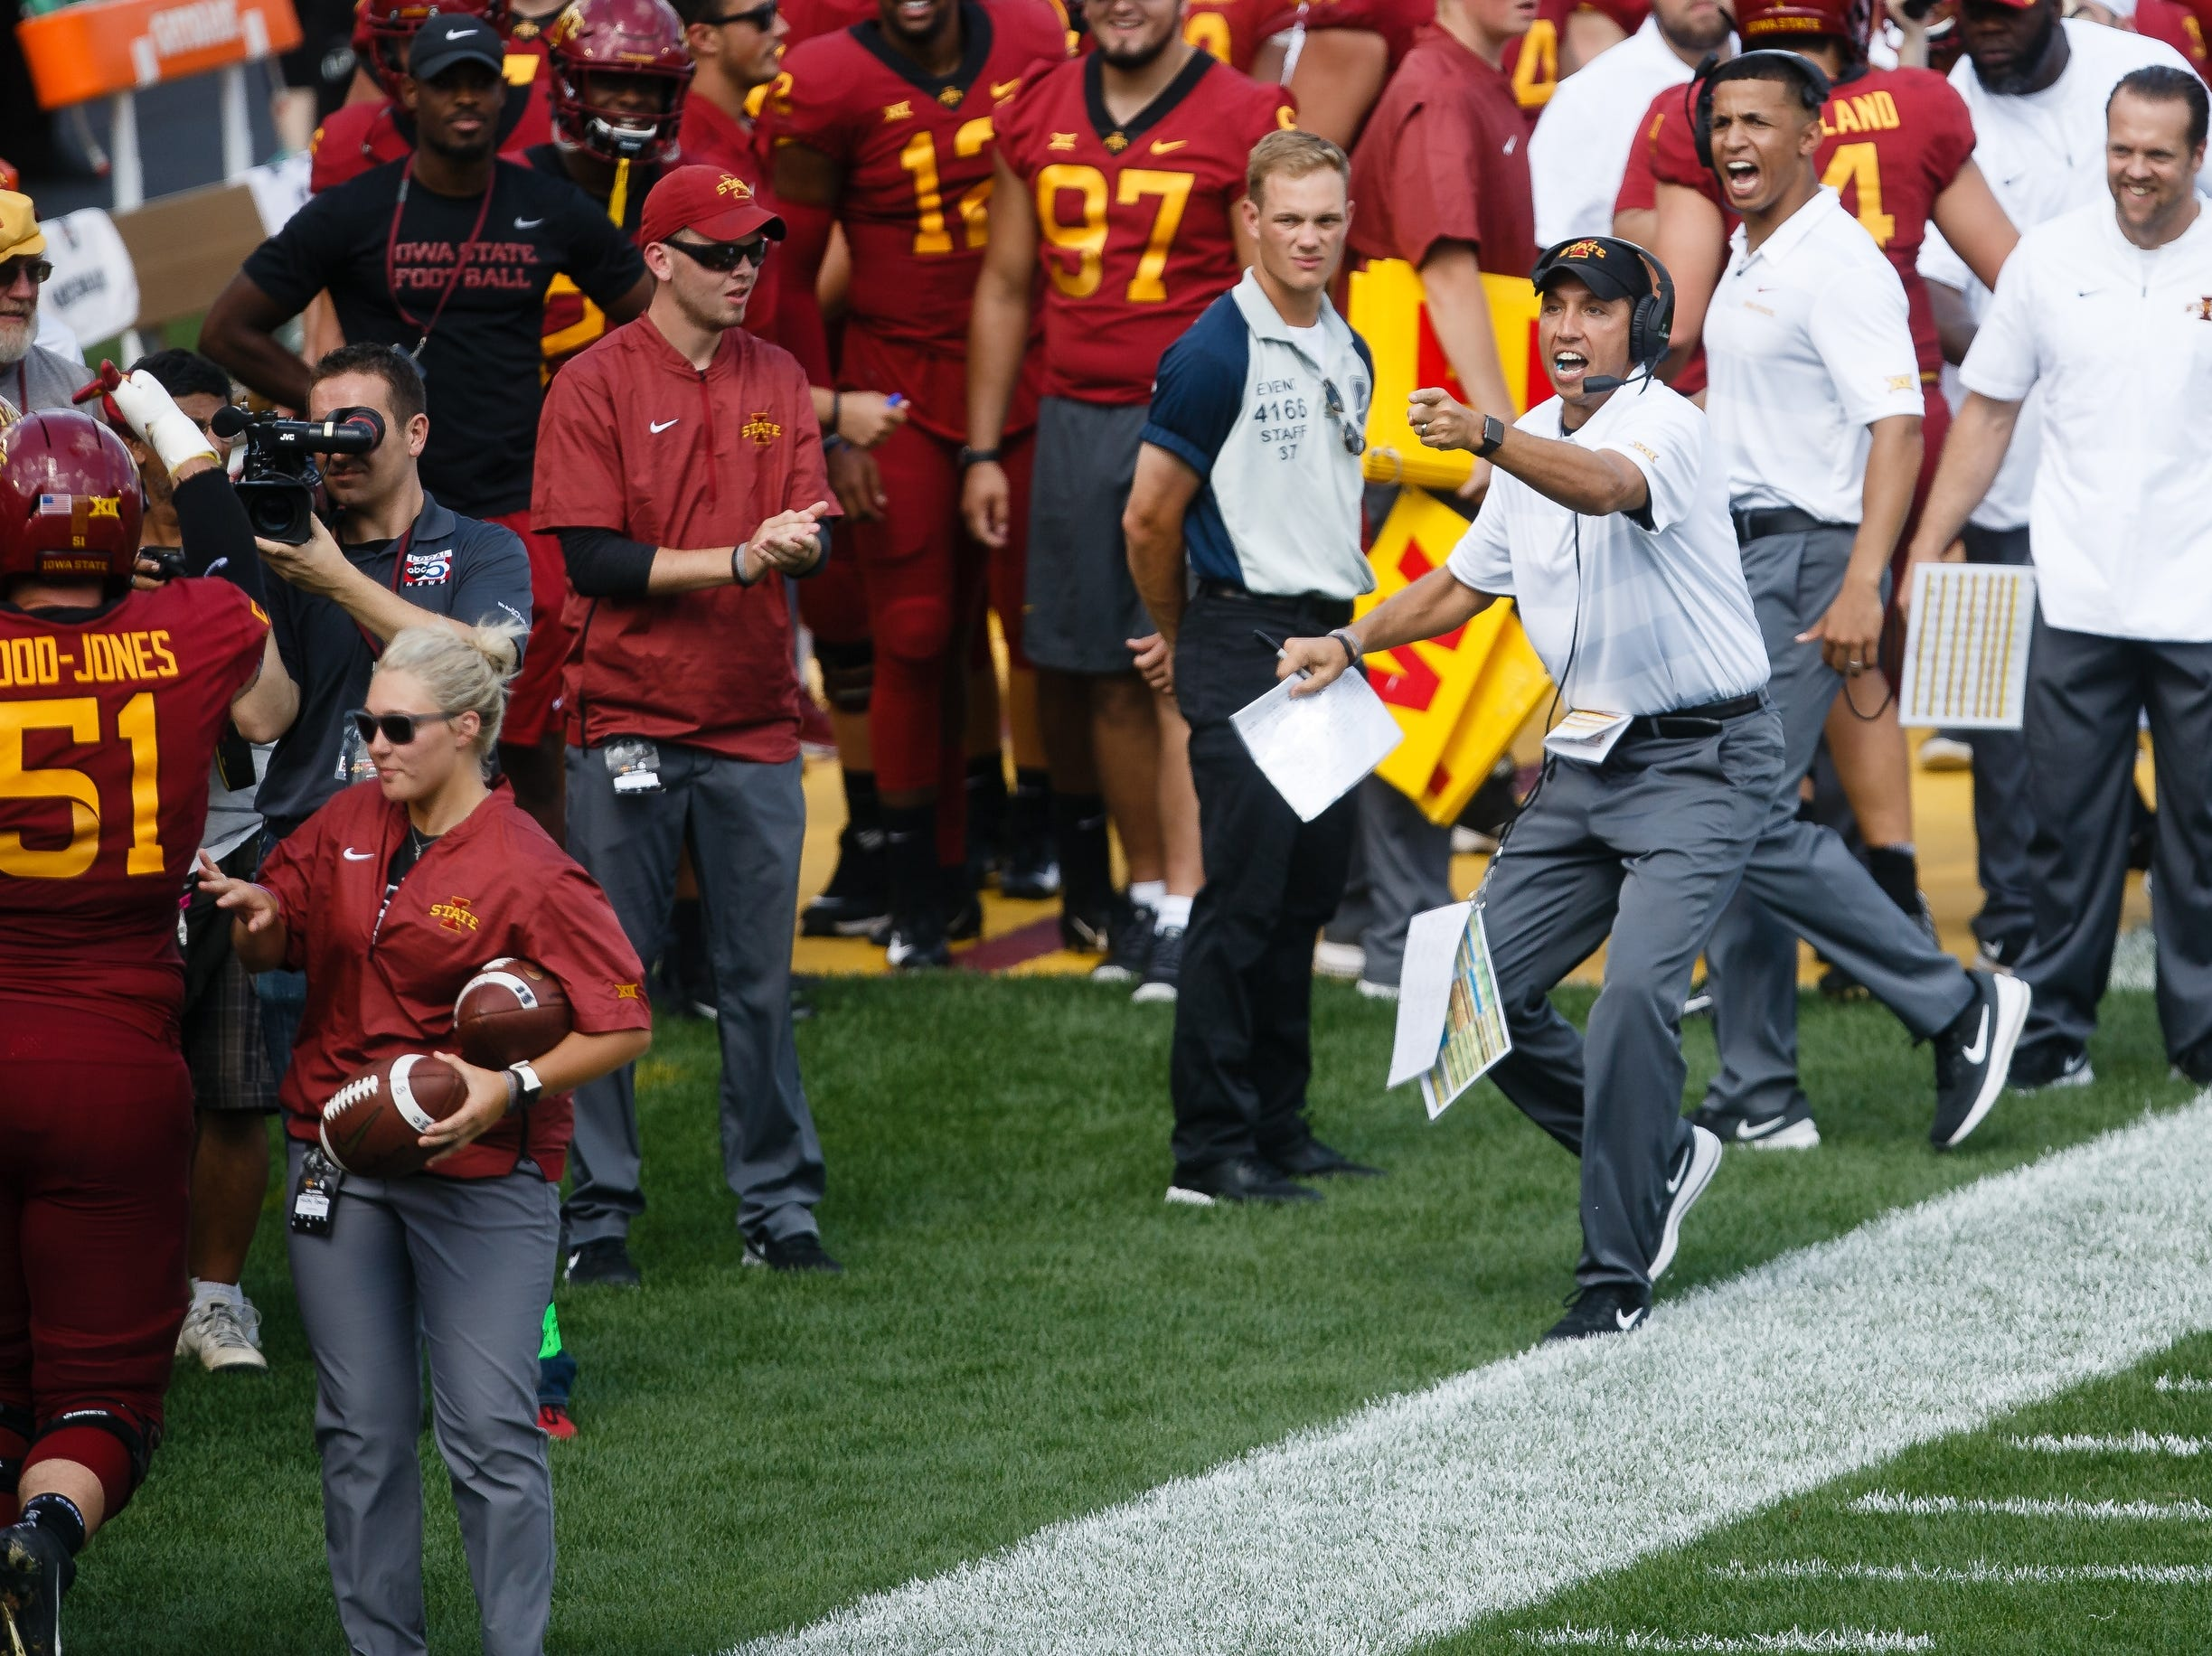 Iowa State head coach Matt Campbell celebrates Hakeem Butler's touchdown catch to start the third quarter of their football game at Jack Trice Stadium on Saturday, Sept. 15, 2018 in Ames. Oklahoma would go on to win 37-27.